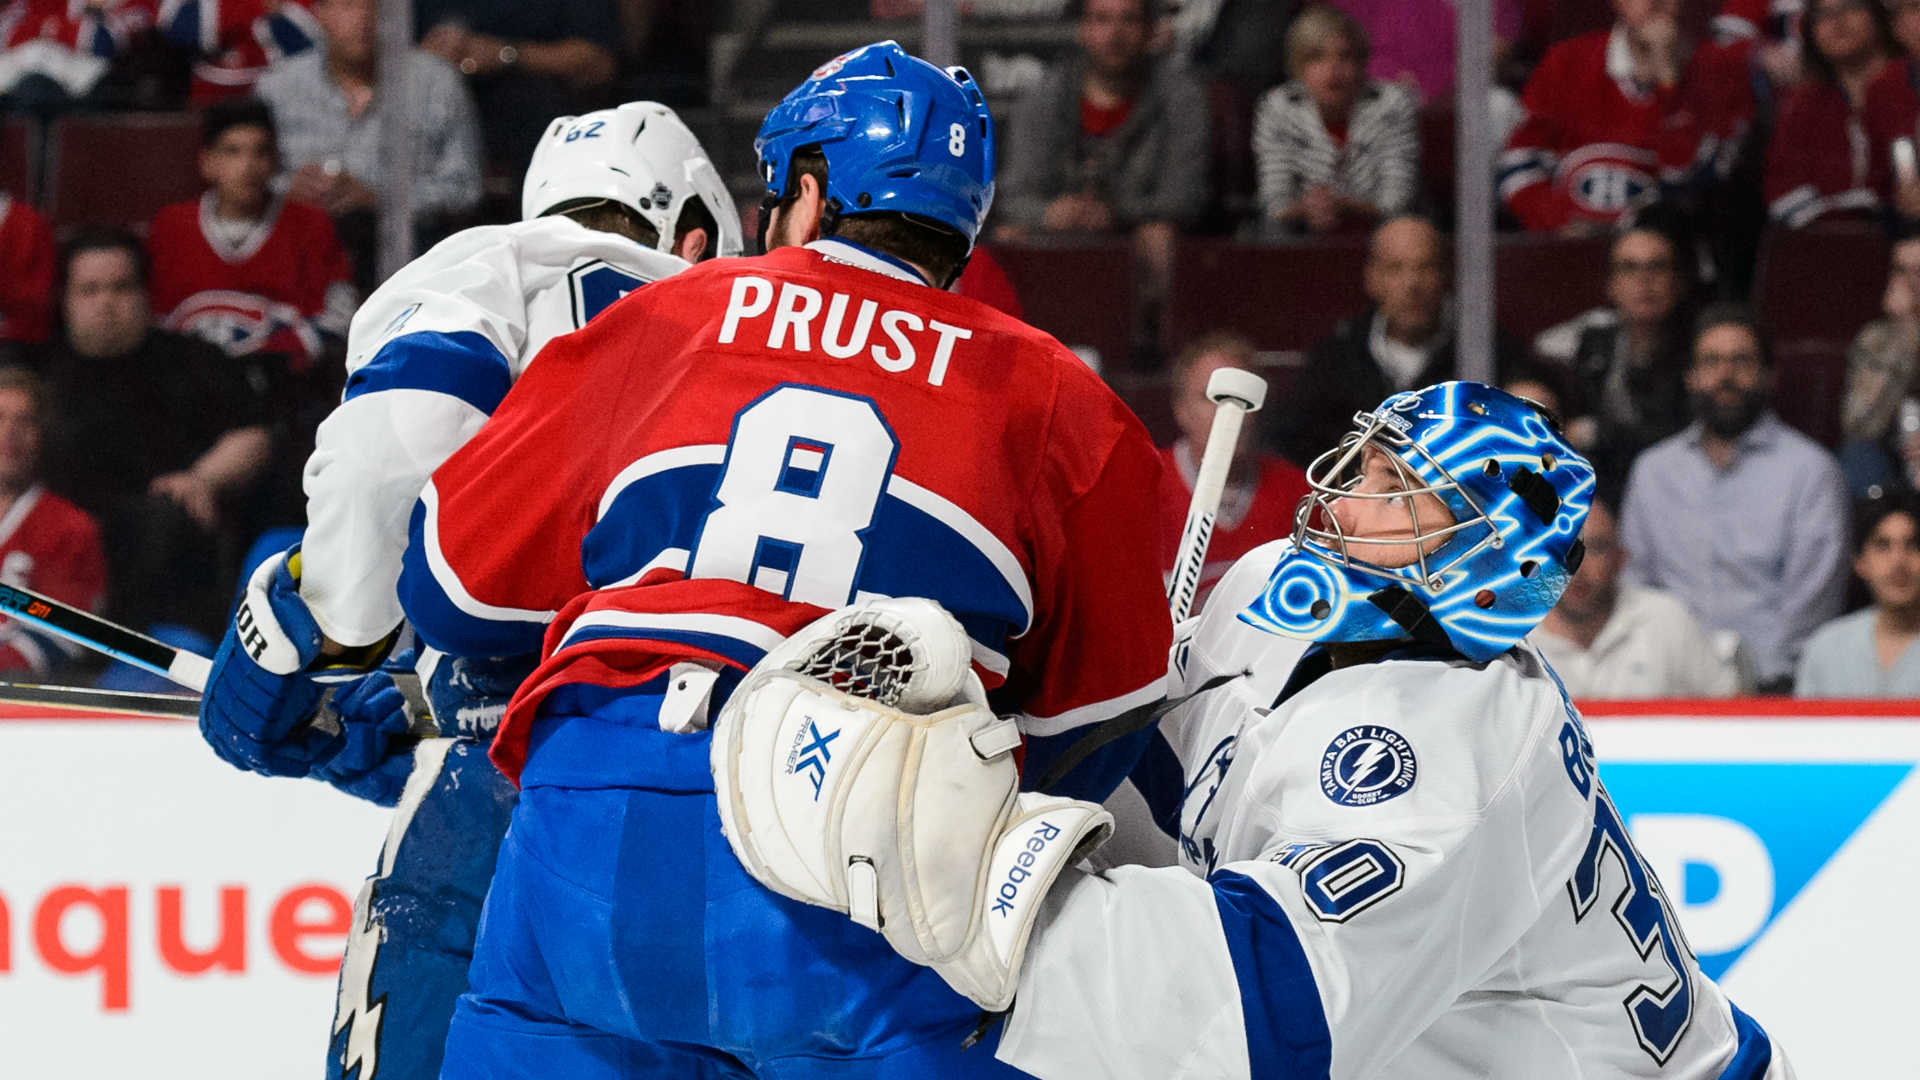 Canadiens forward Brandon Prust